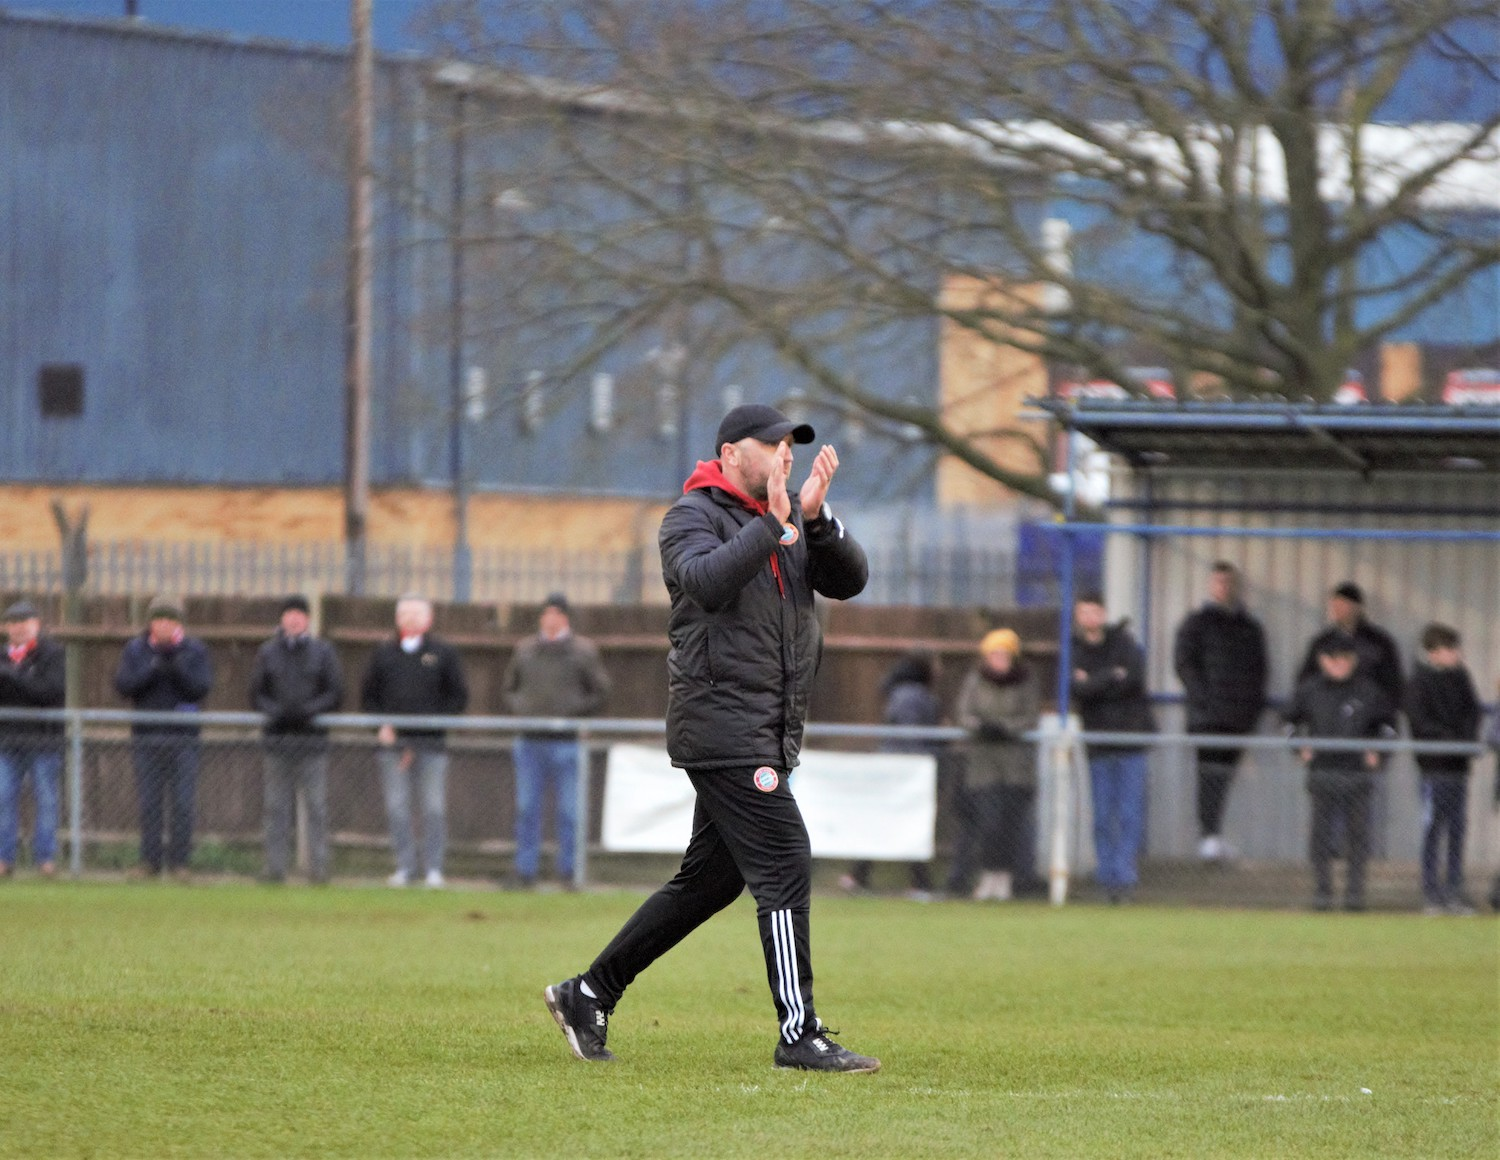 Read the full article - Lessons Learnt at Kingstonian